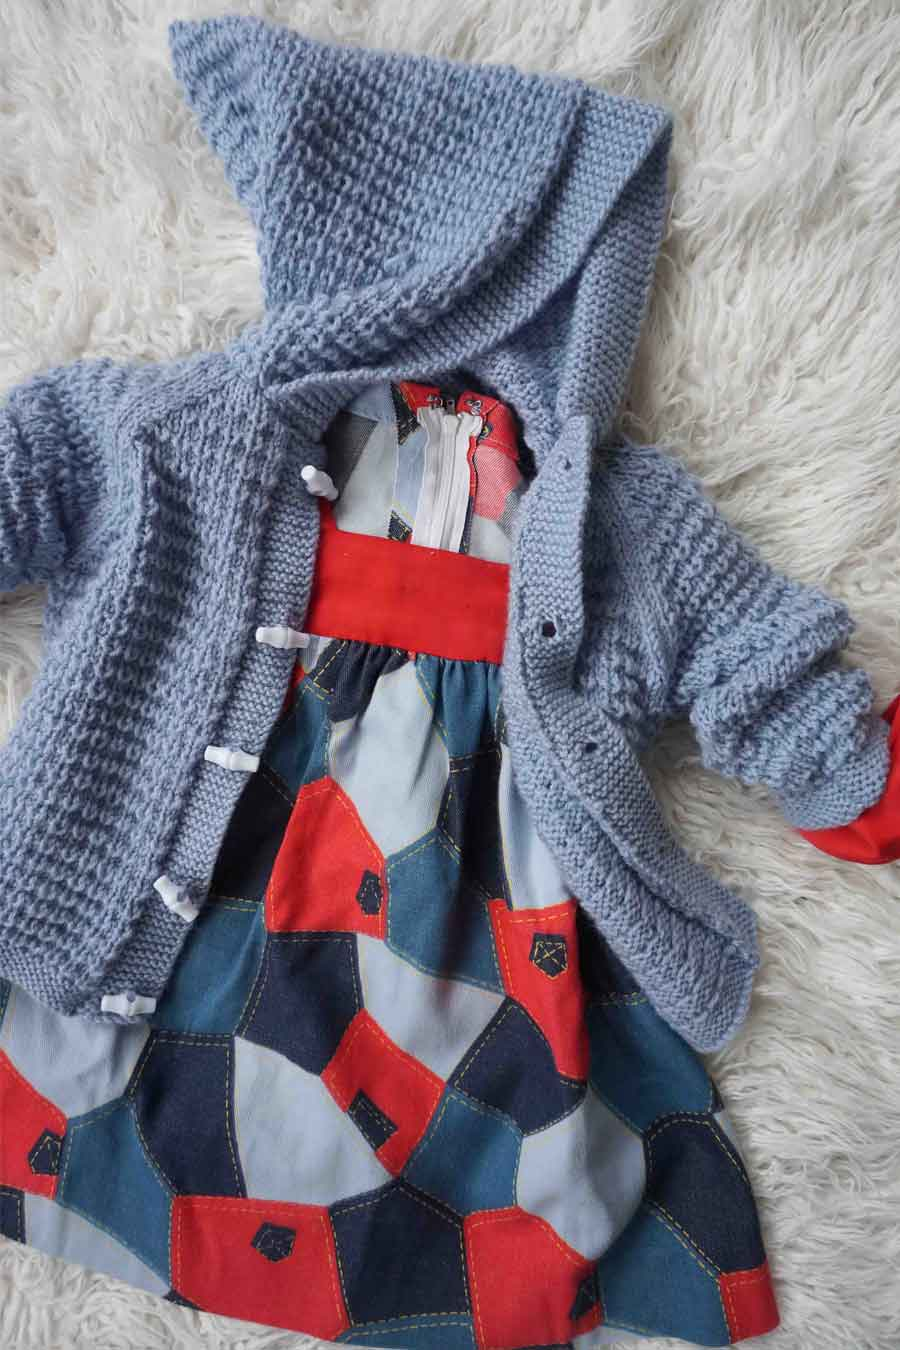 Vintage Blue Hand Knitted Hooded Toddler Cardigan - Vintage childrens clothes - ada's attic vintage